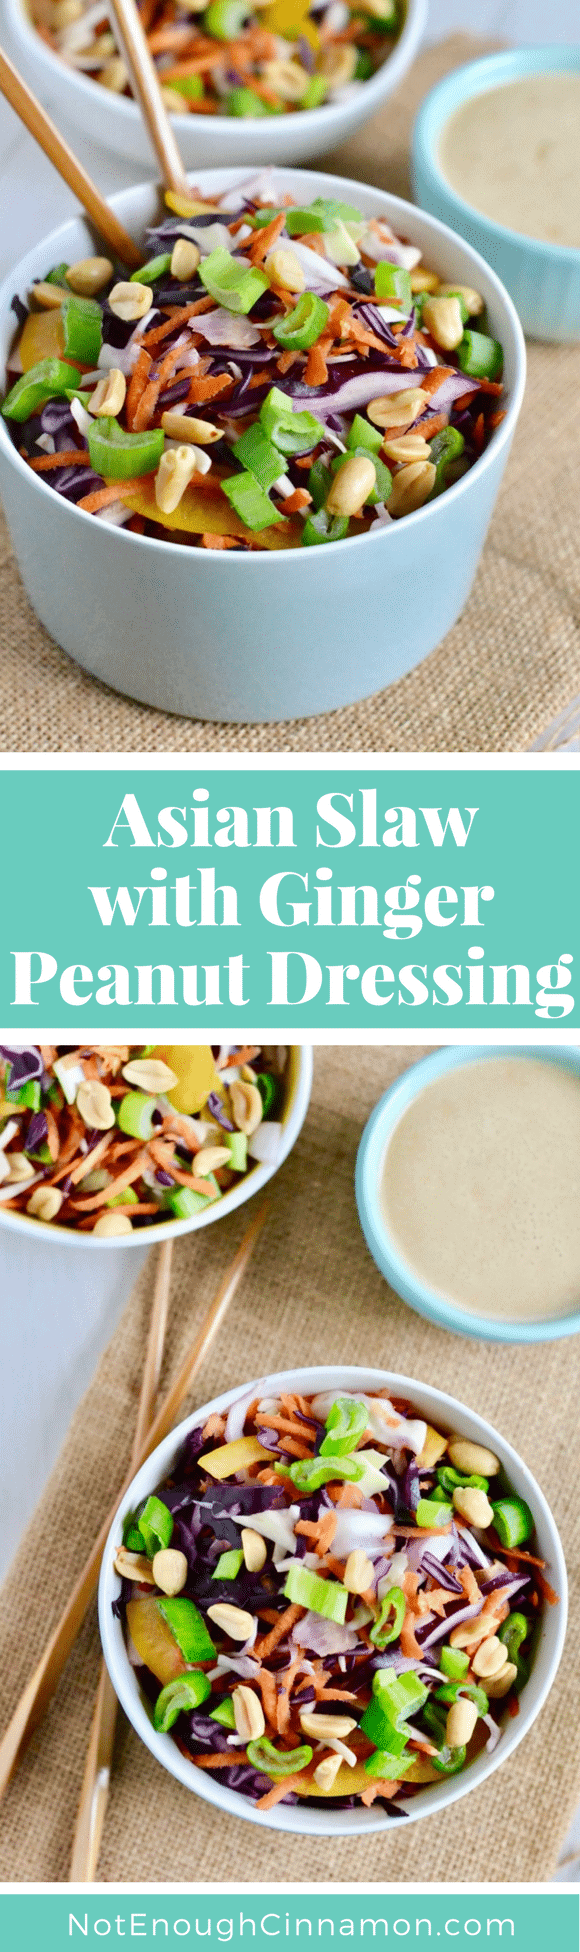 This crunchy Asian Slaw is a healthy twist on a classic coleslaw with a creamy dairy-free Ginger Peanut Dressing instead of mayo! This gluten-free salad goes with any kind of meat or fish and makes the perfect light side dish for a bbq party! #cleaneating, #glutenfree, #coleslaw, #bbq, #dairyfree